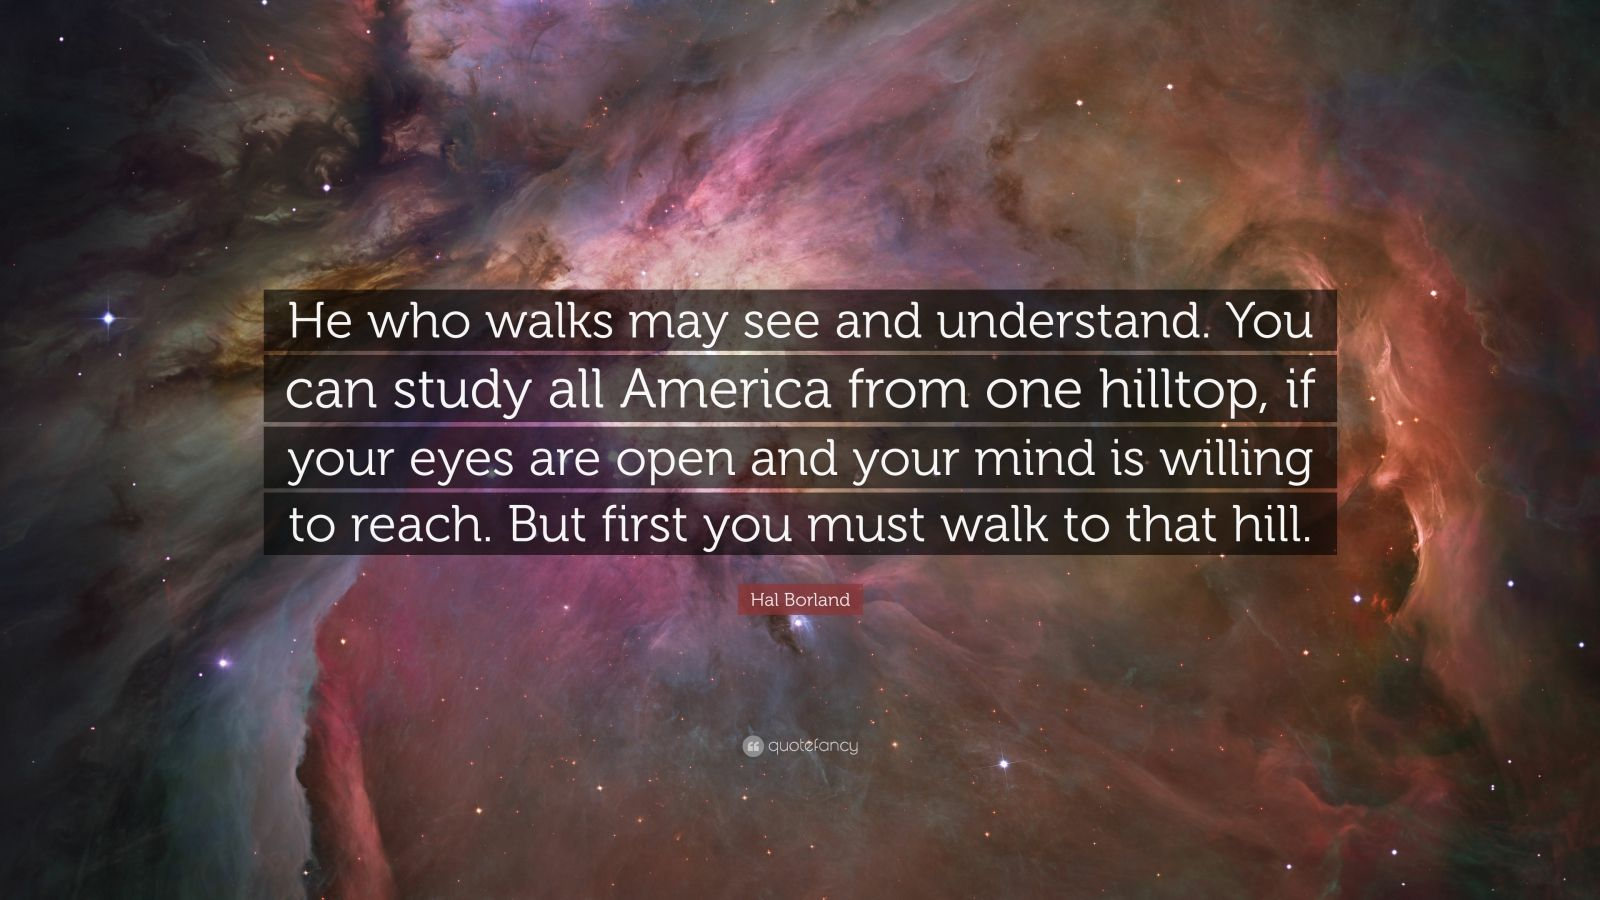 """Hal Borland Quote: """"He who walks may see and understand. You can study all America from one hilltop, if your eyes are open and your mind is willing to reach. But first you must walk to that hill."""""""